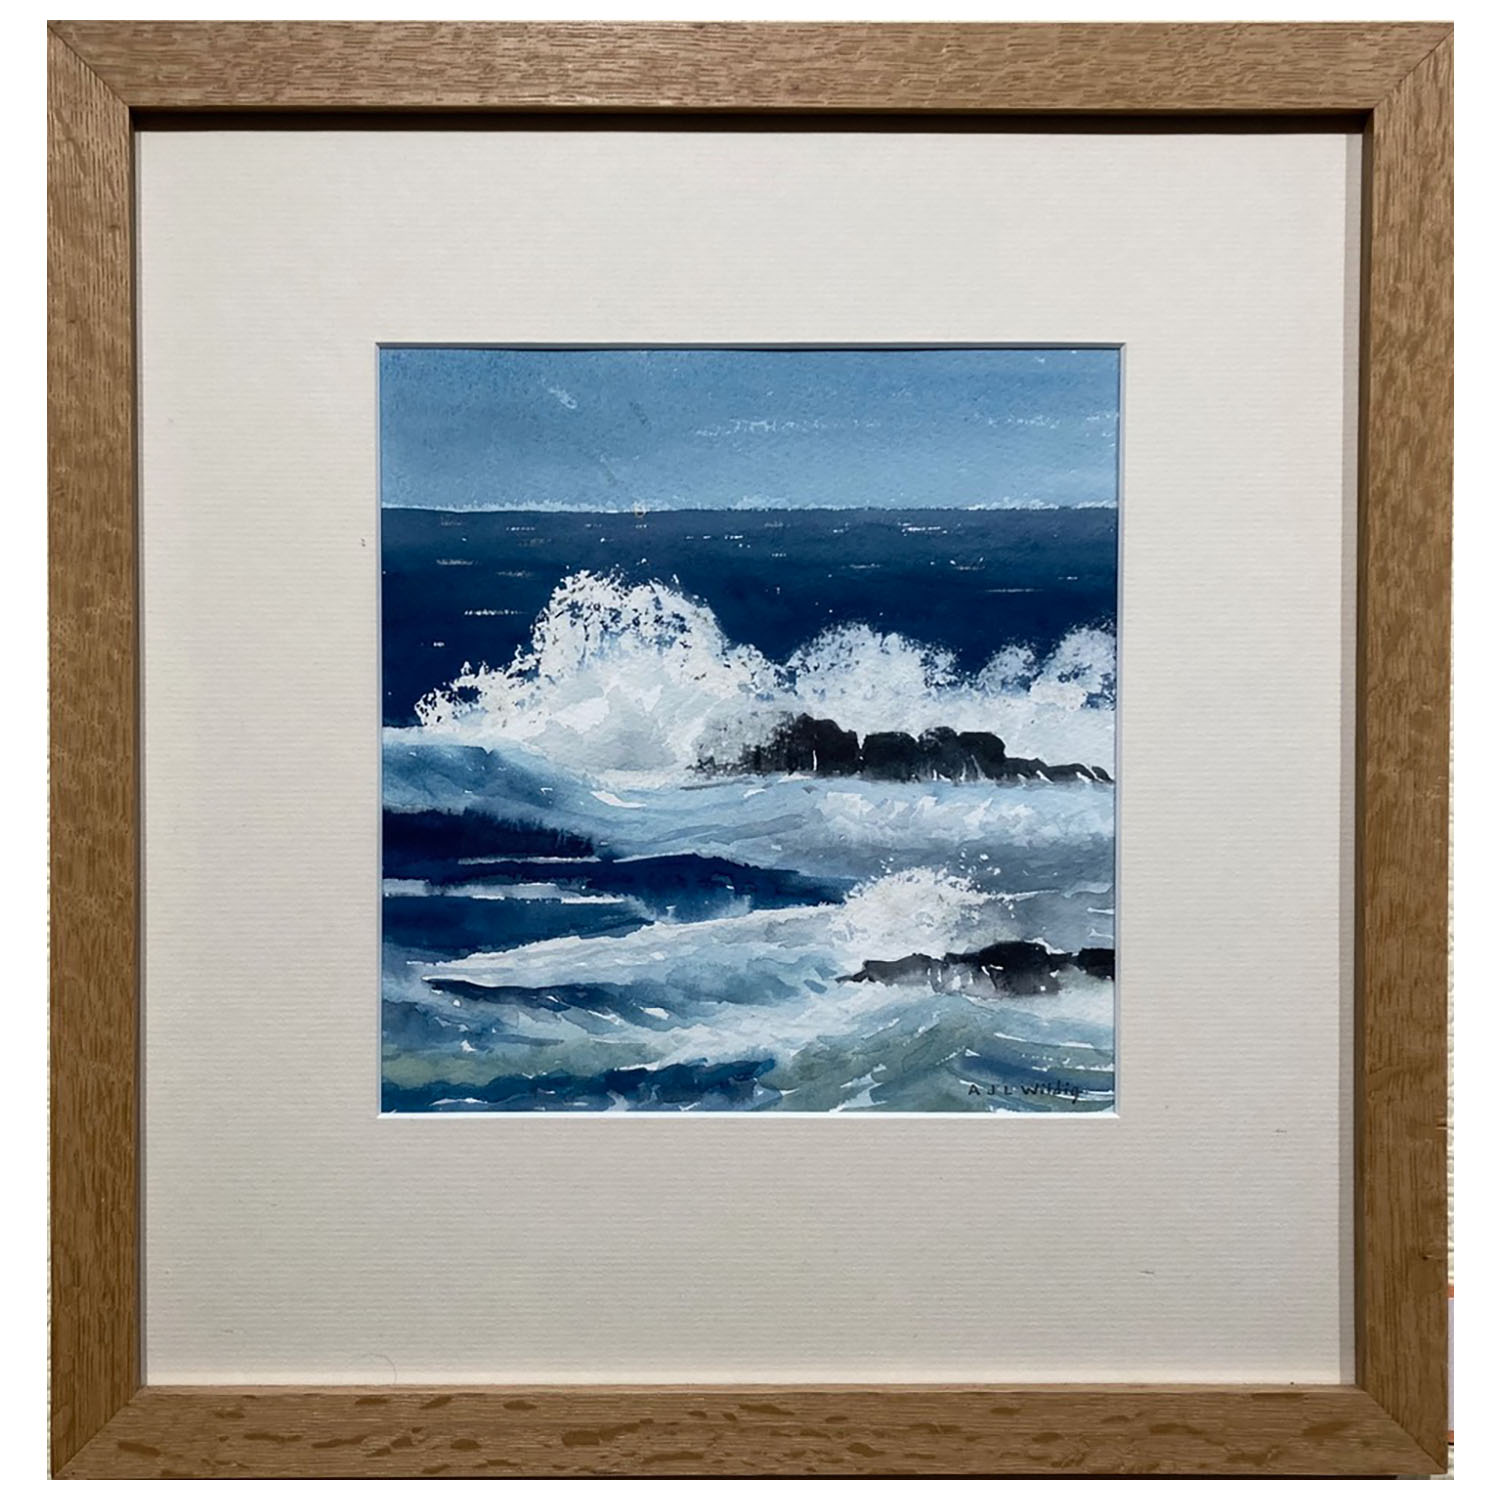 Anthony Wildig, Sennen Cove Cornwall, Watercolour, 394x380mm, £120, Framed